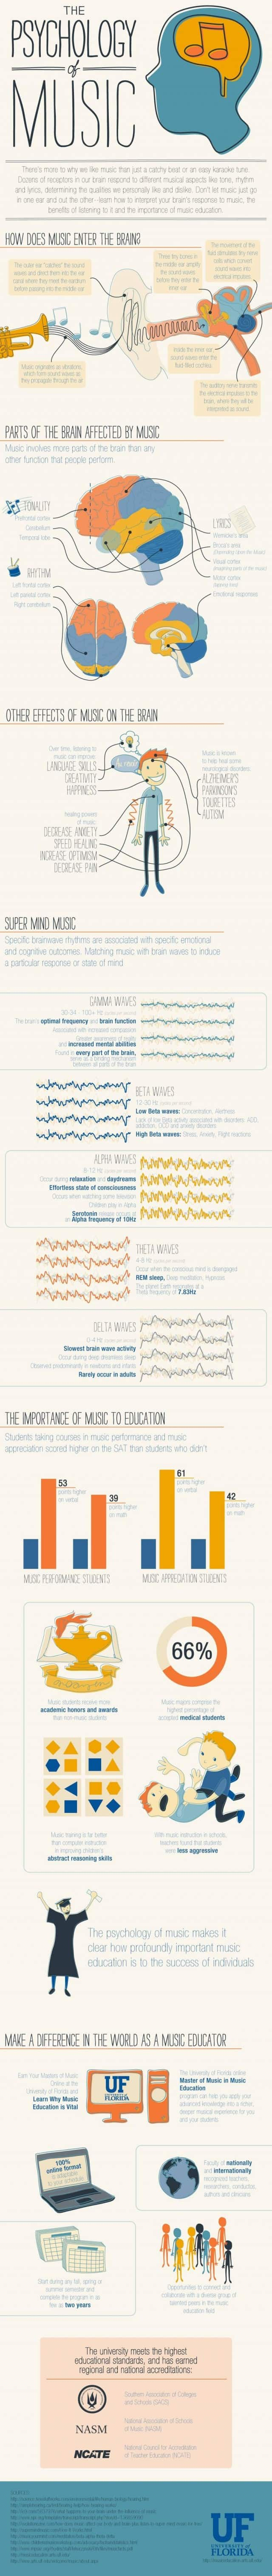 Psychology of Music Infographic